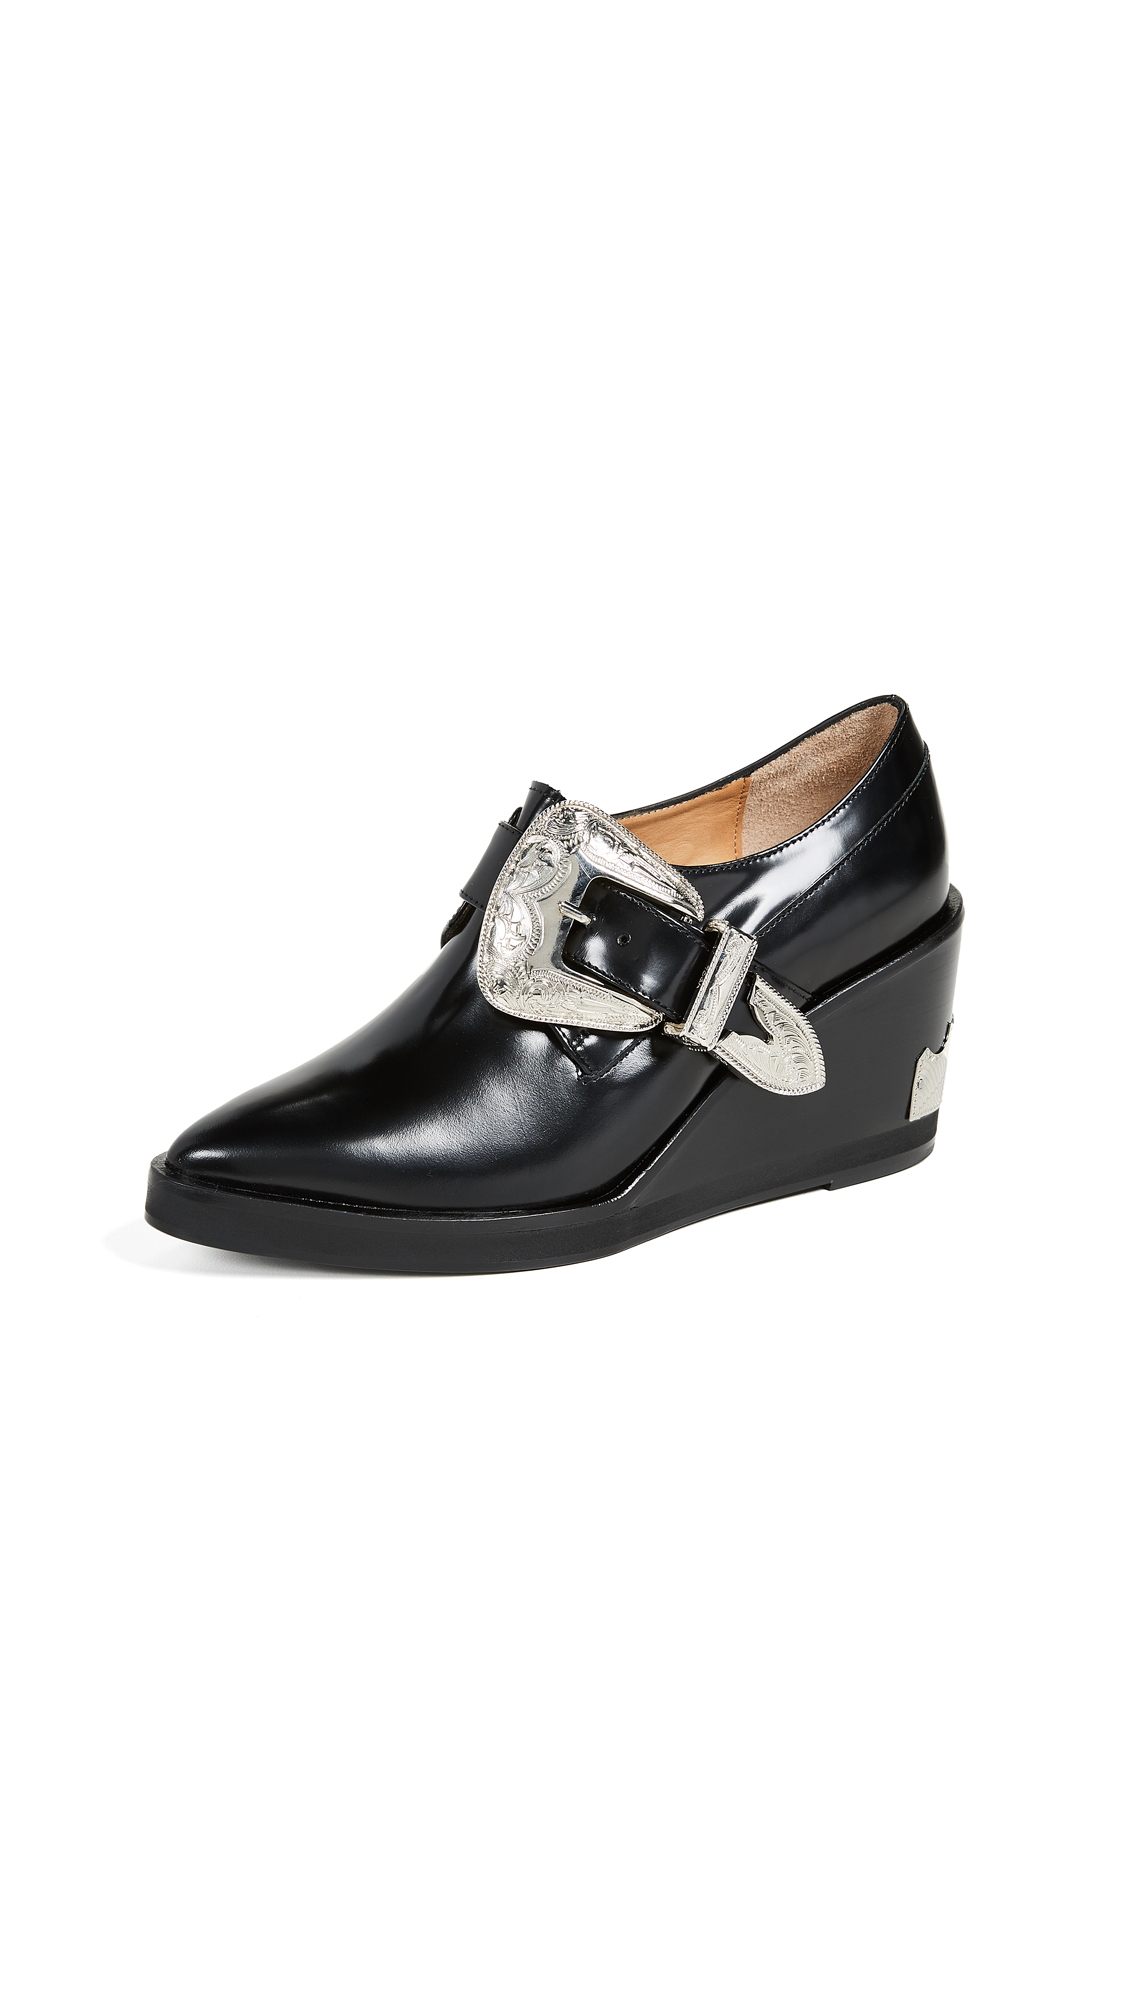 Toga Pulla Buckled Wedge Oxford Shoes - Black